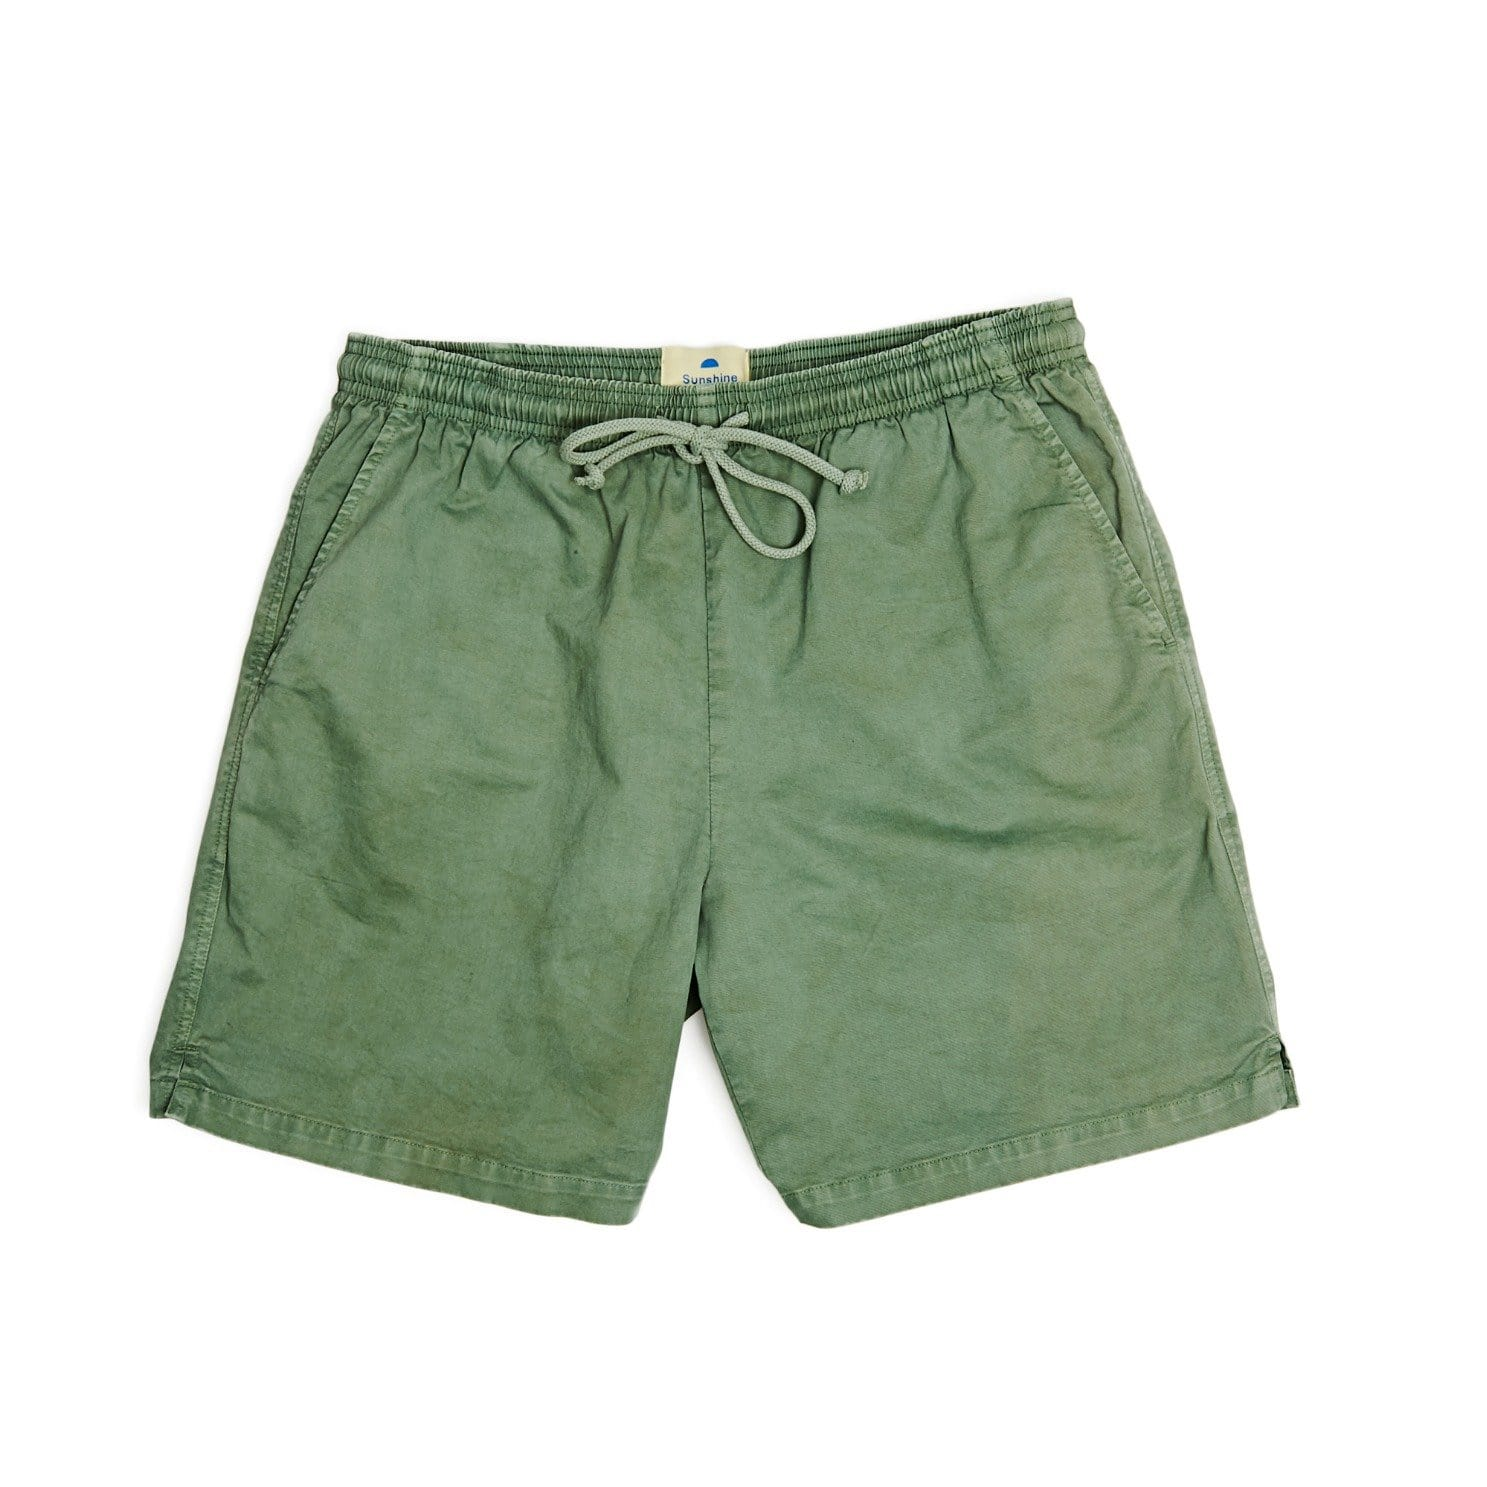 SSB Summer Olive Shorts